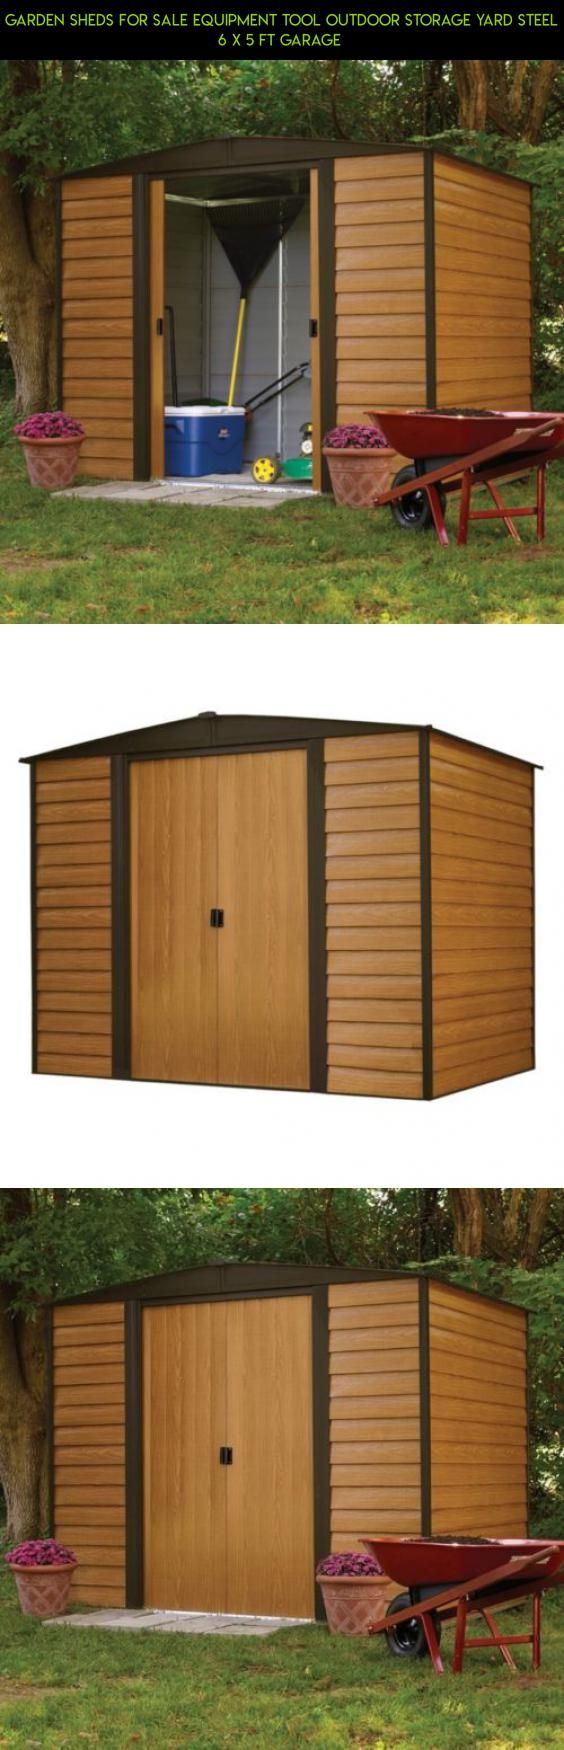 Garden Sheds For Sale Equipment Tool Outdoor Storage Yard Steel 6 x 5 Ft Garage  #plans #racing #shopping #tech #camera #gadgets #products #drone #yard #parts #fpv #storage #kit #technology